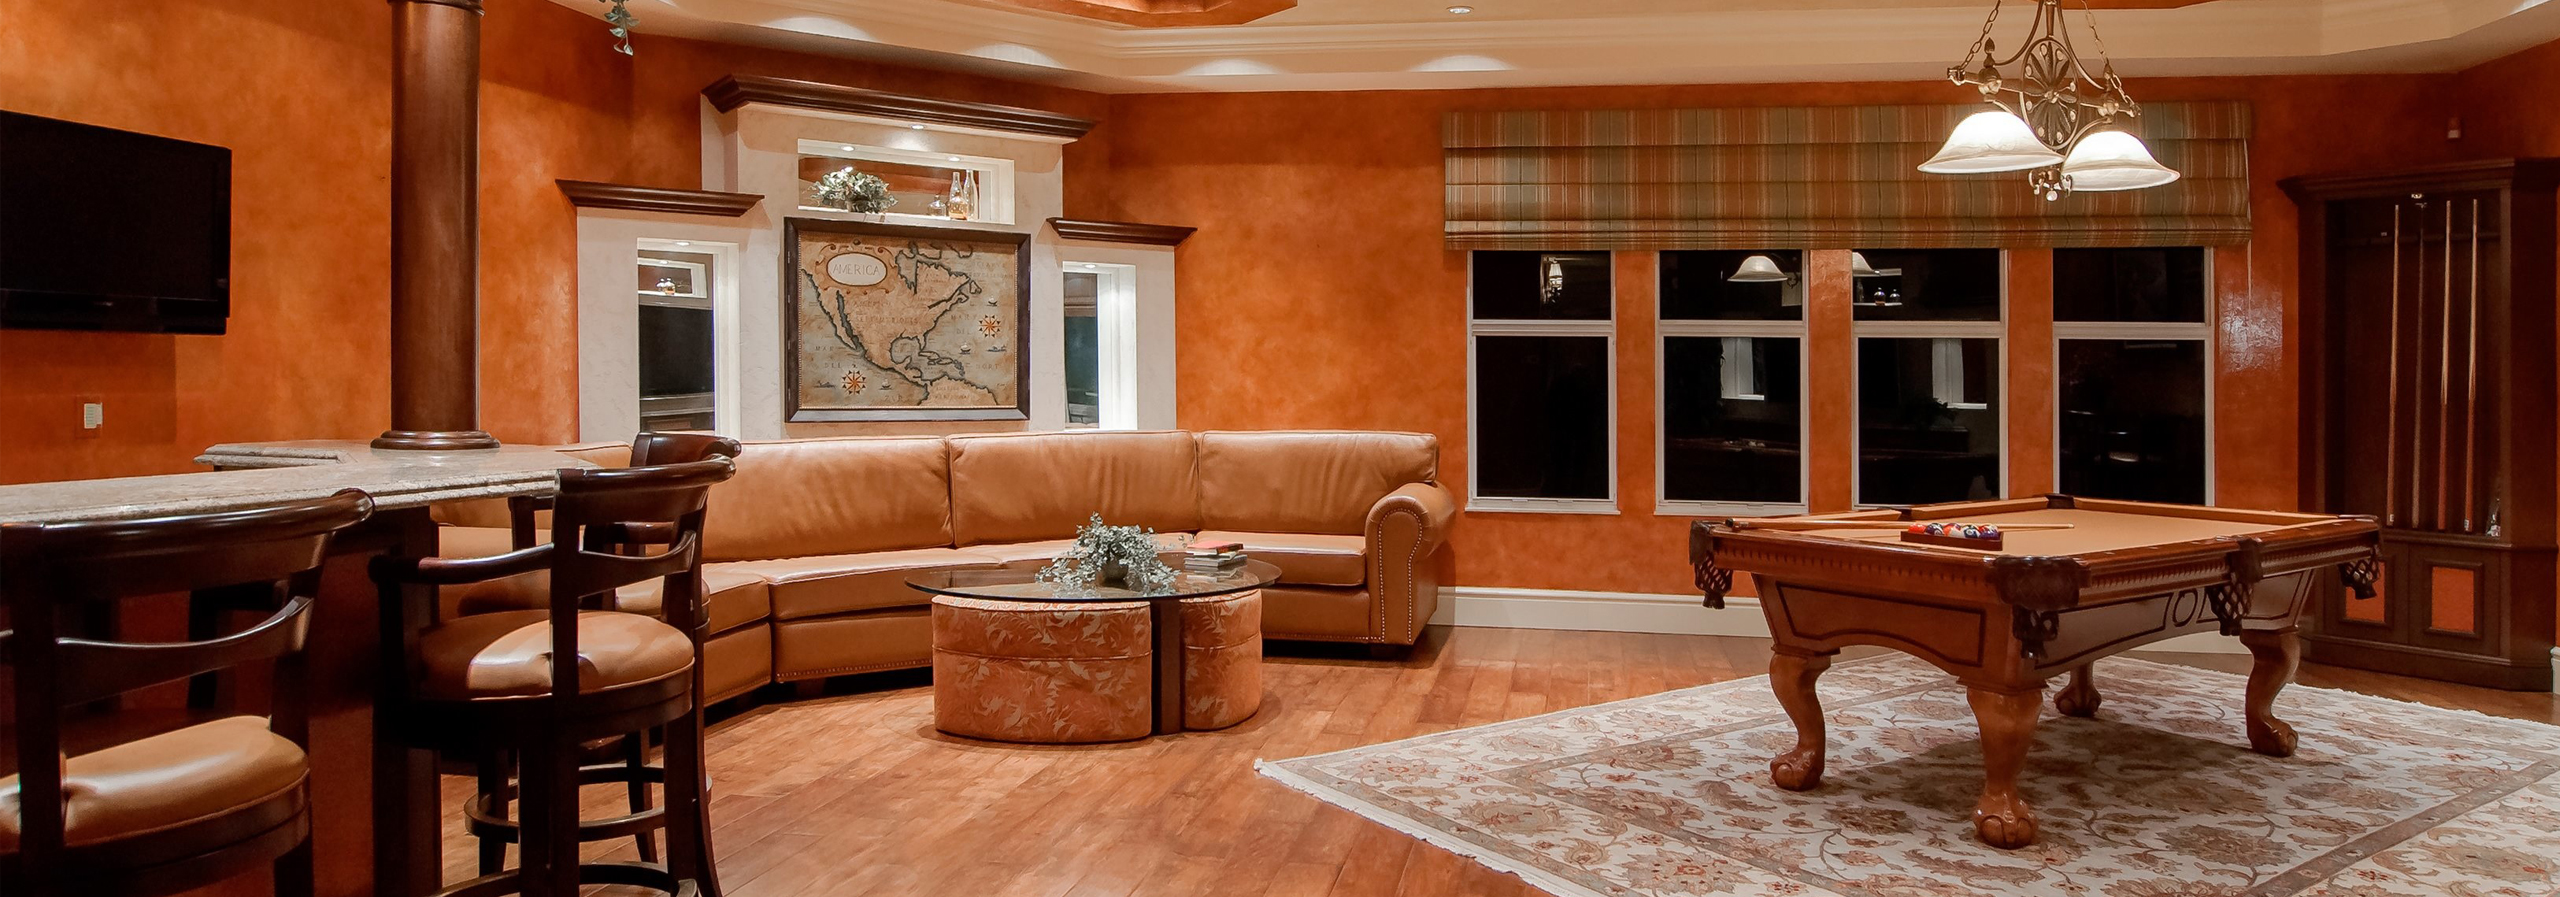 Home Remodeling Ideas to make more room in your Home